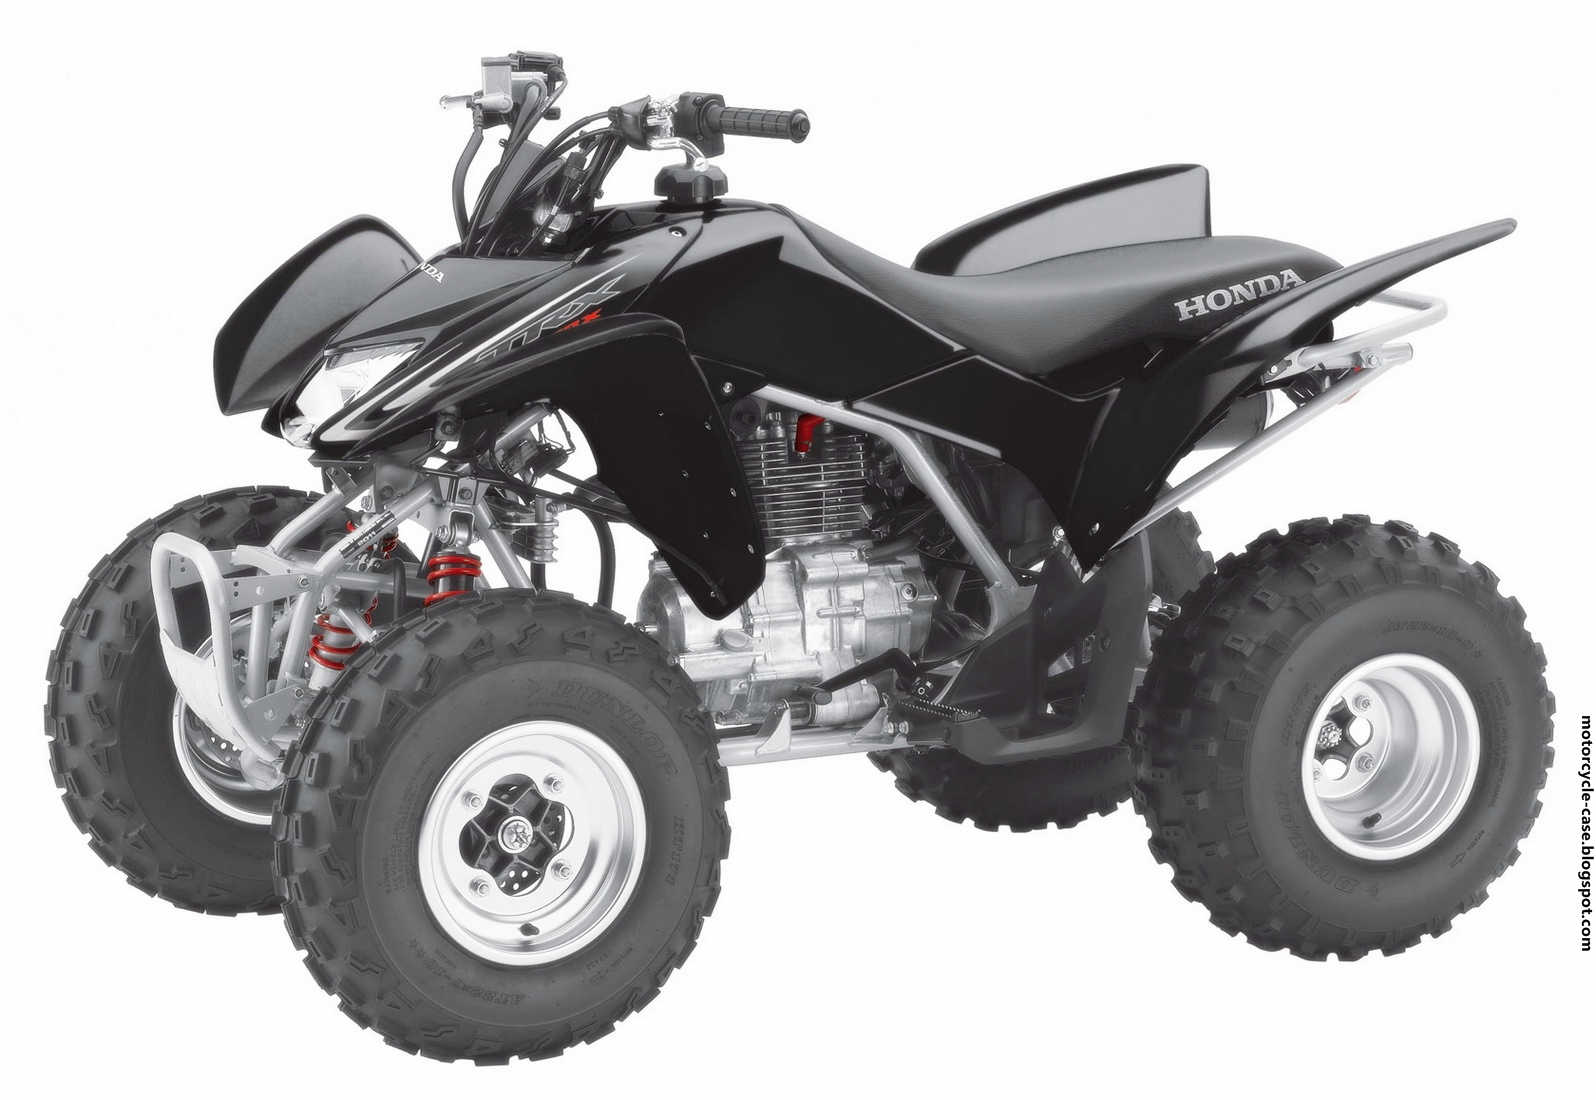 Honda Atv Trx250x 2011 Motorcycle Case